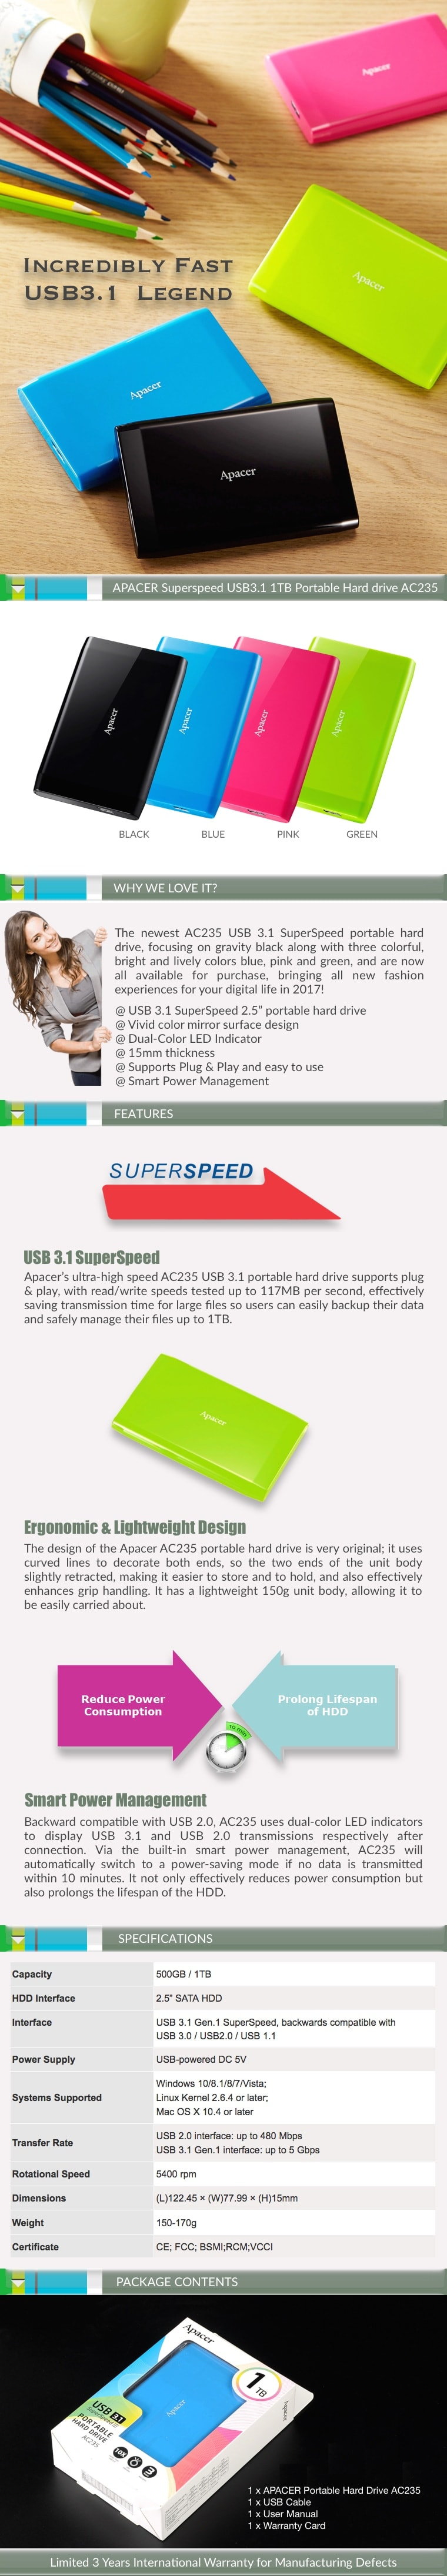 APACER Superspeed USB3.1 1TB Portable Hard Drive AC235